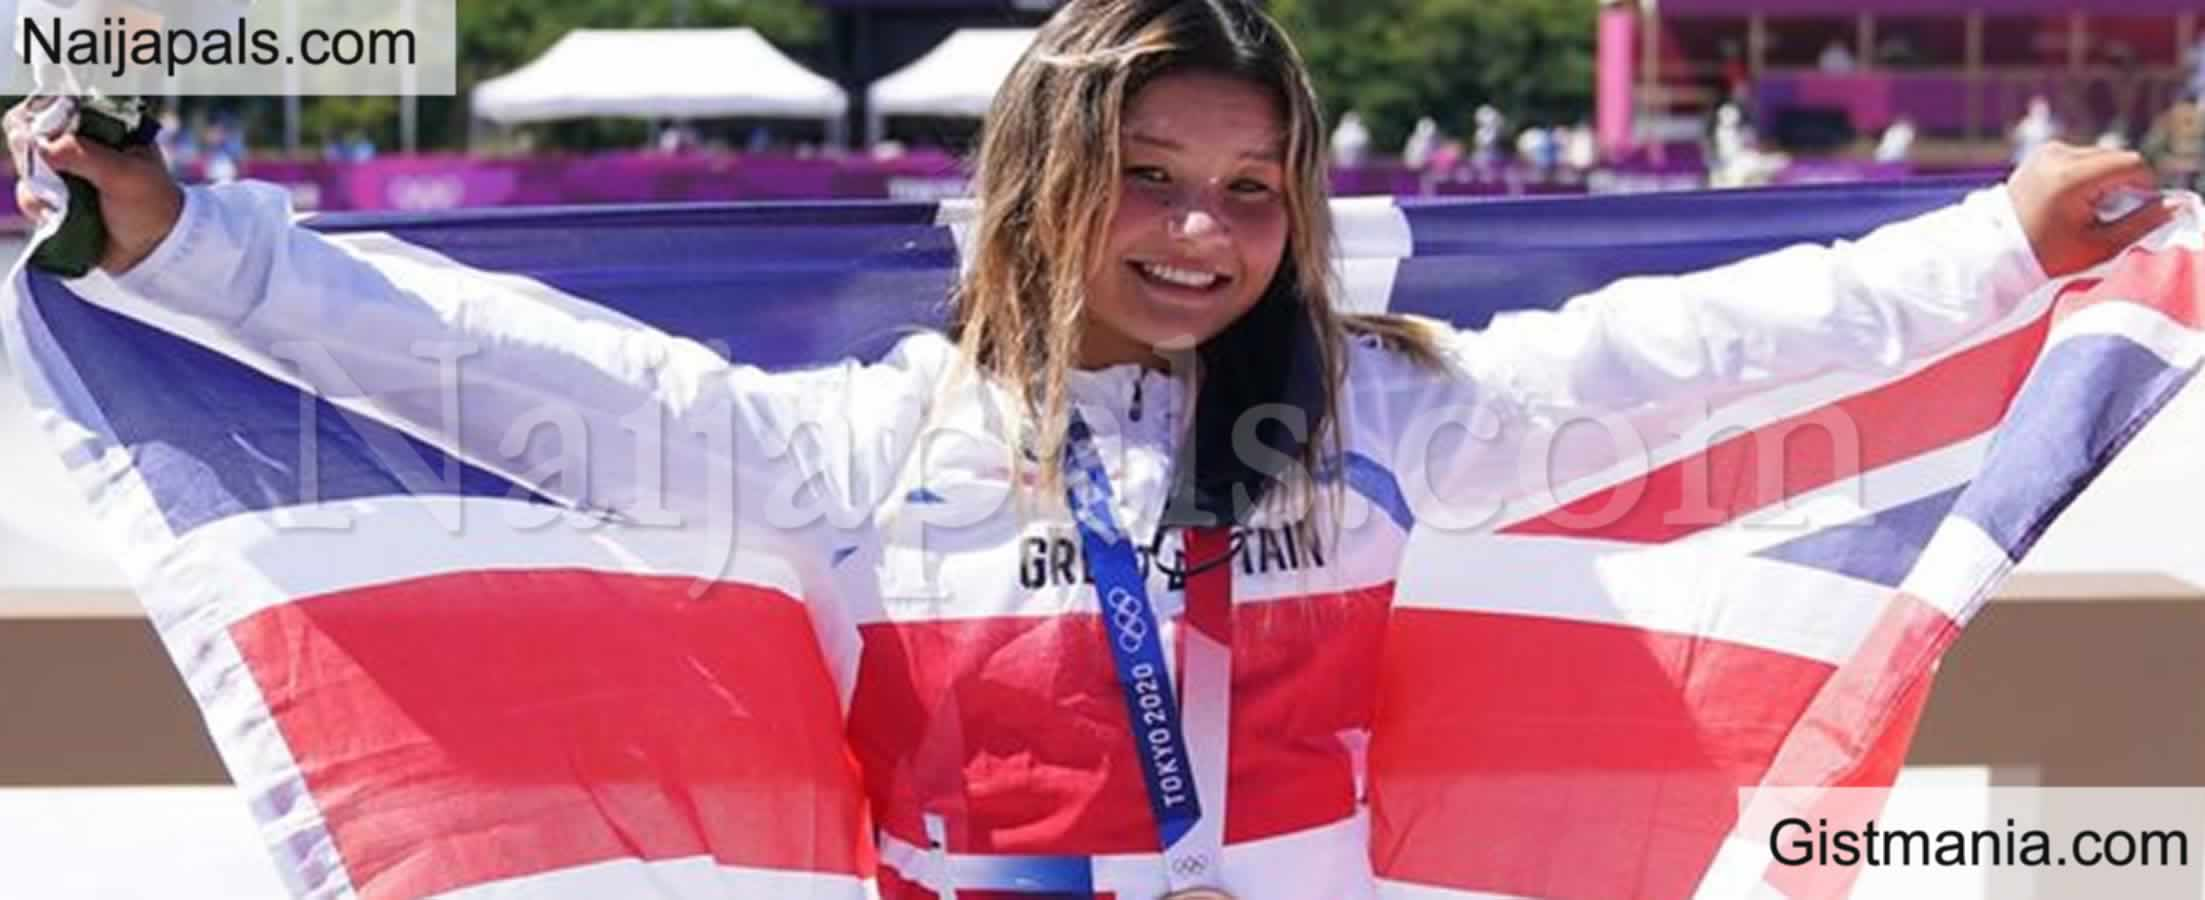 <img alt='.' class='lazyload' data-src='https://img.gistmania.com/emot/thumbs_up.gif' /><b> 13-year-old Girl Makes History After Winning Olympic Medal  </b>For Great Britain (Photo)